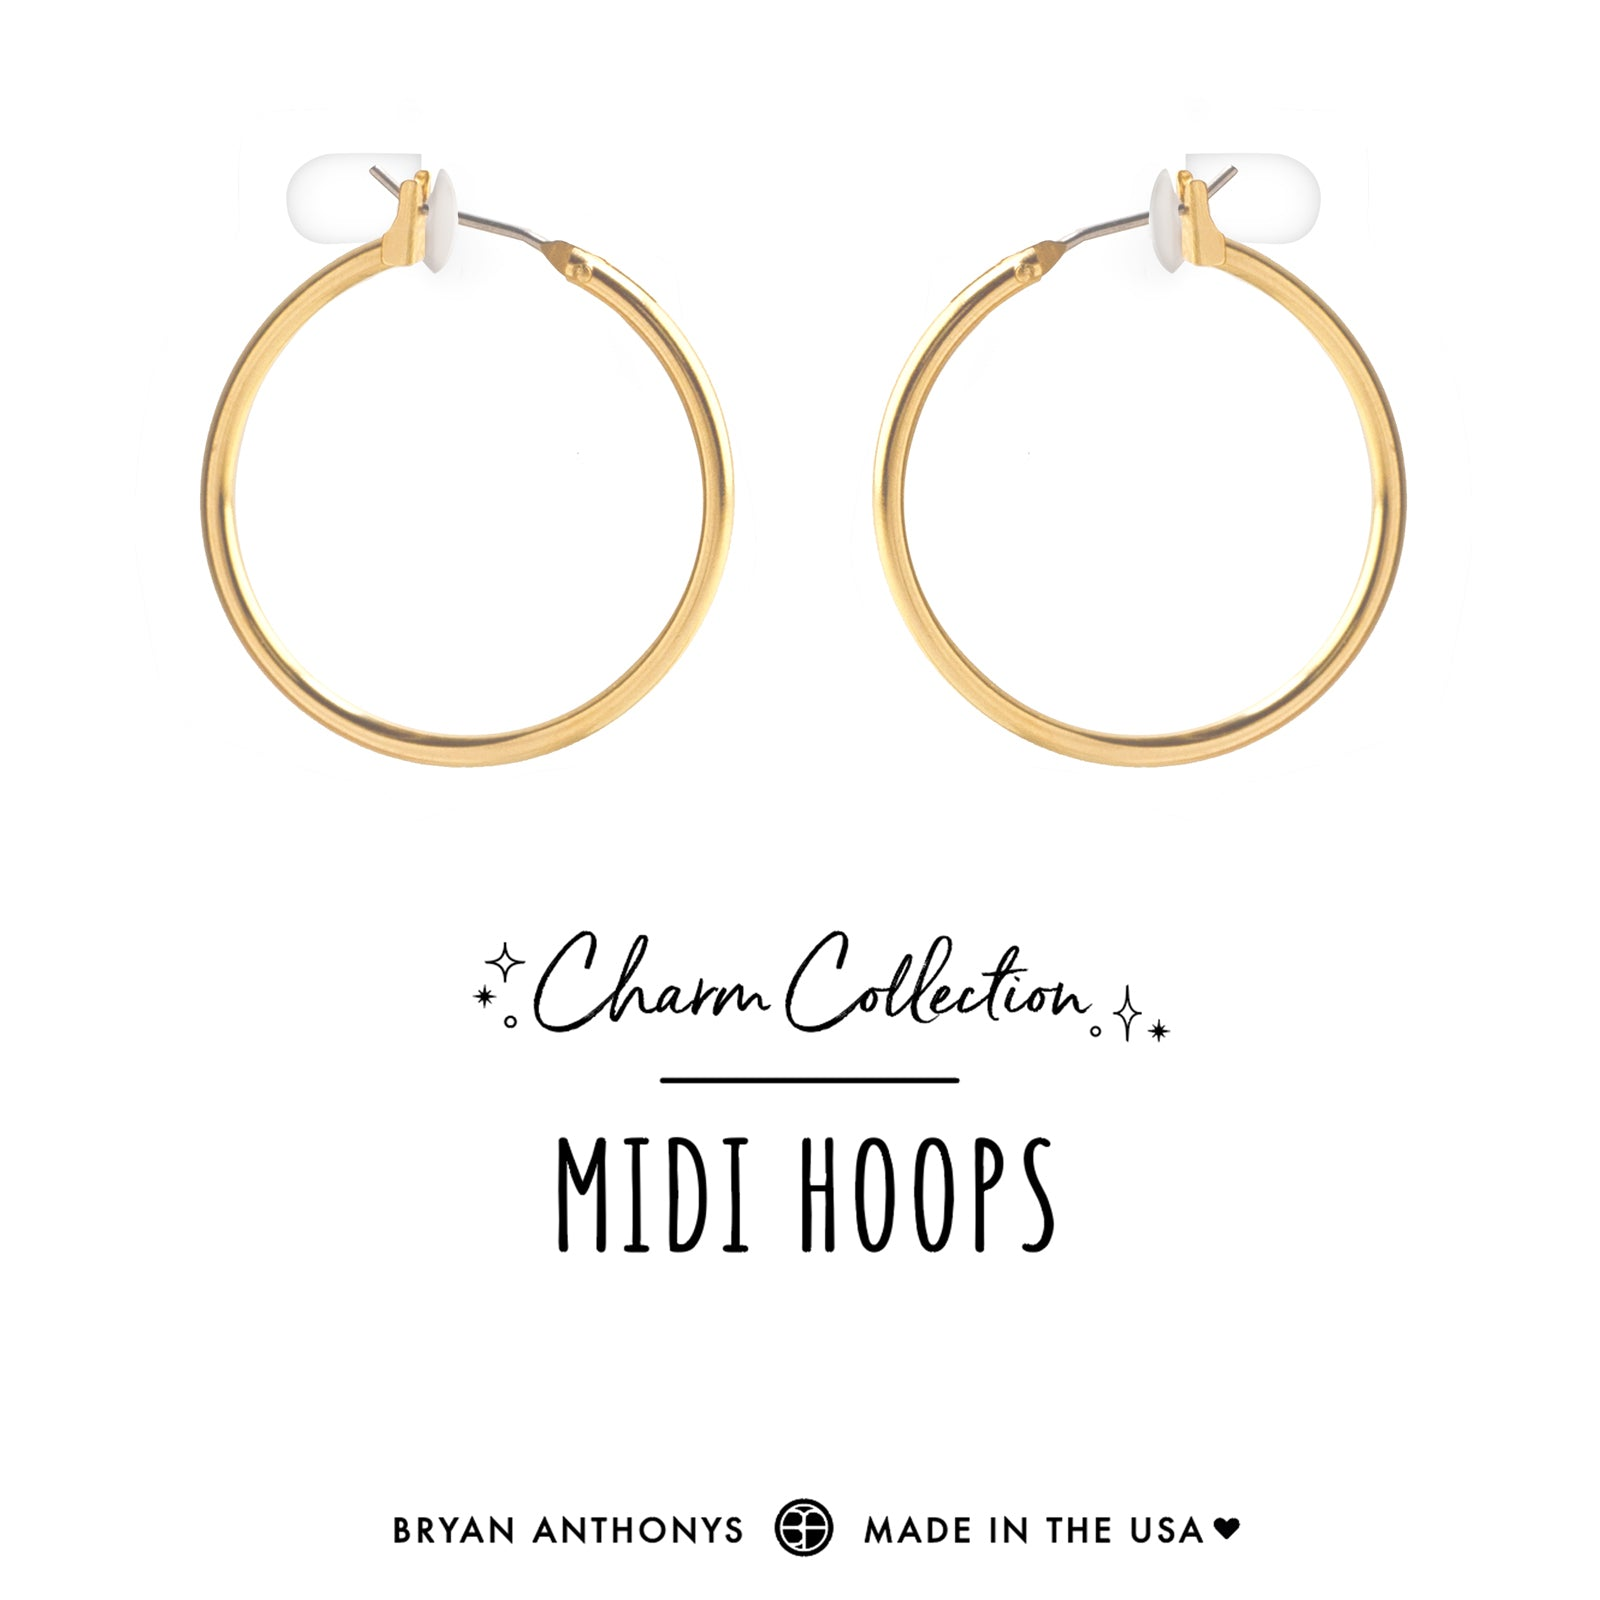 d0547839b bryan anthonys charm collection earring charm bases midi hoops 14k gold